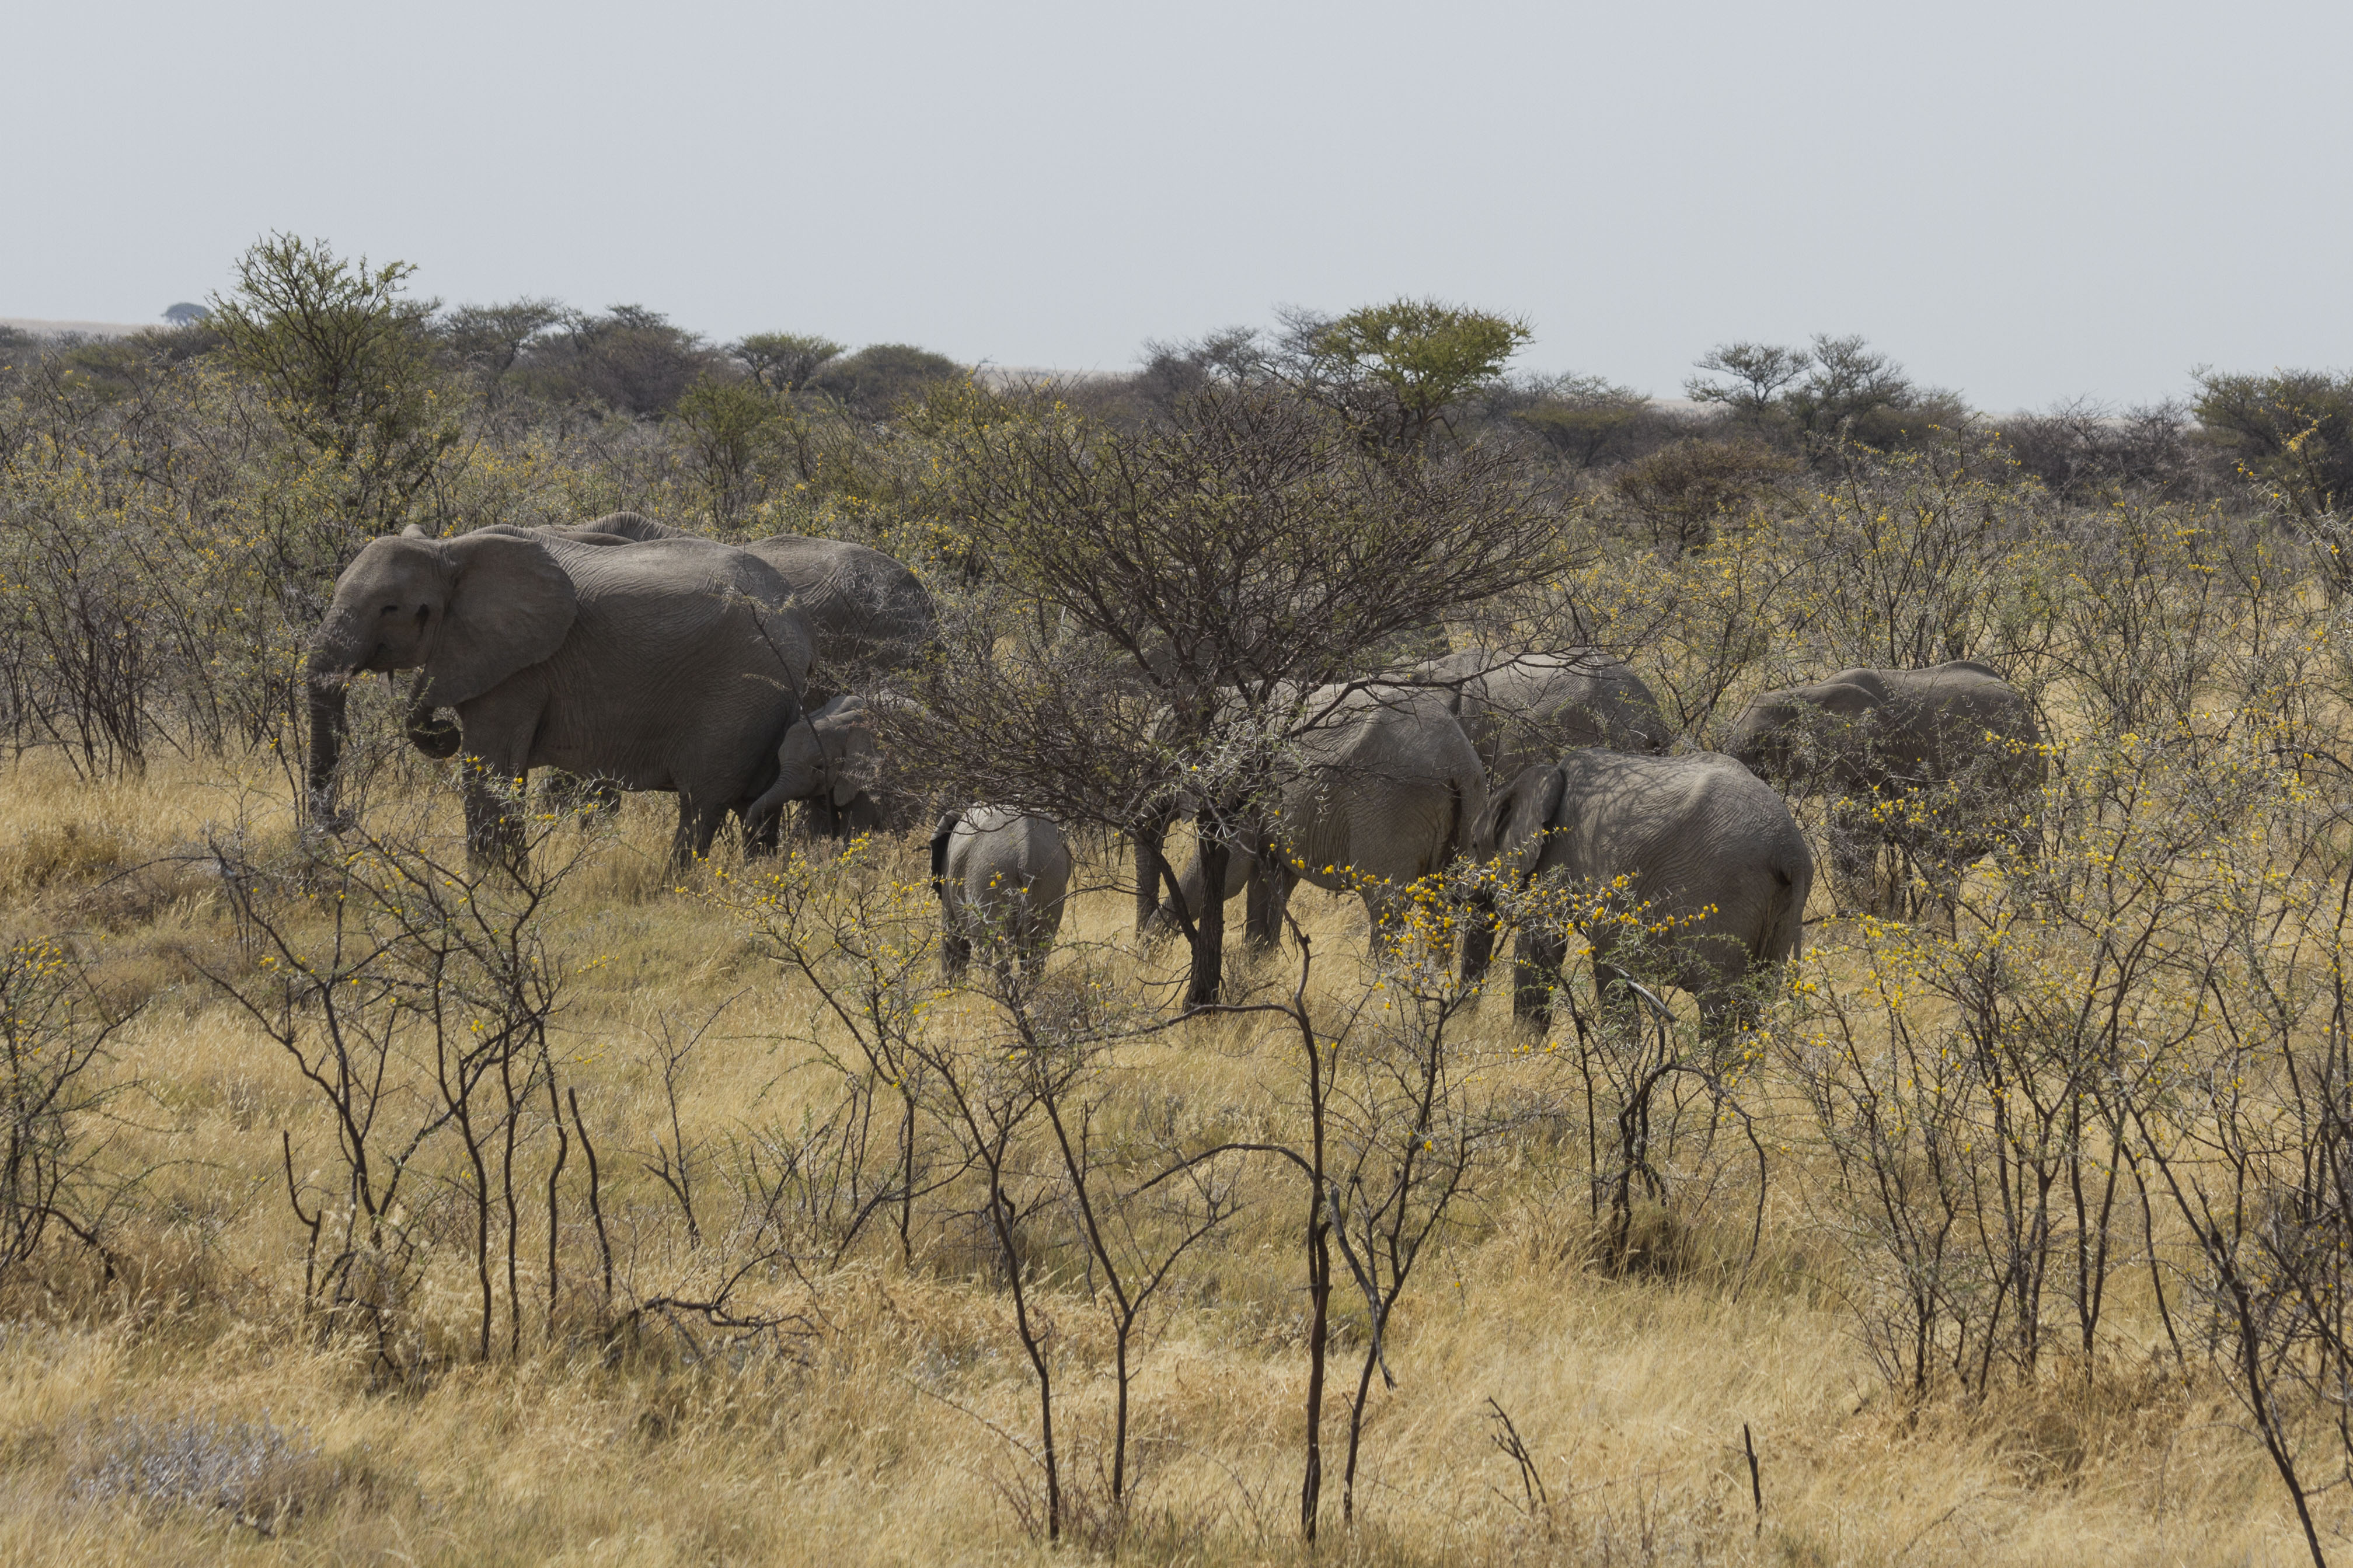 Elephant Herd Grazing in the Acacia